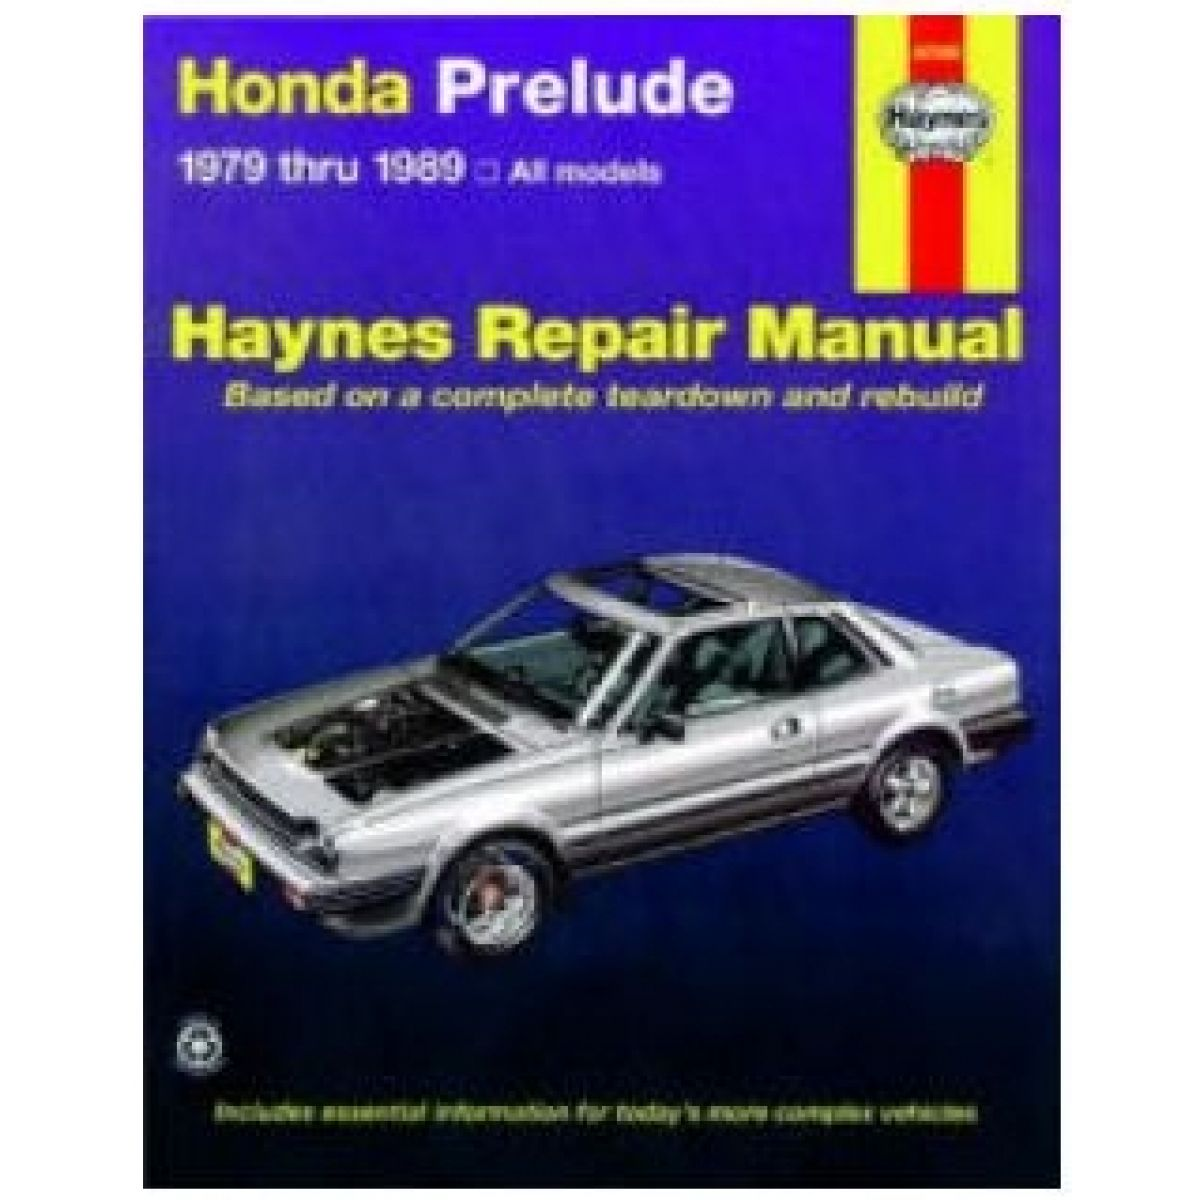 Haynes Repair Manual for Honda Prelude 79-85 86 87 88 89